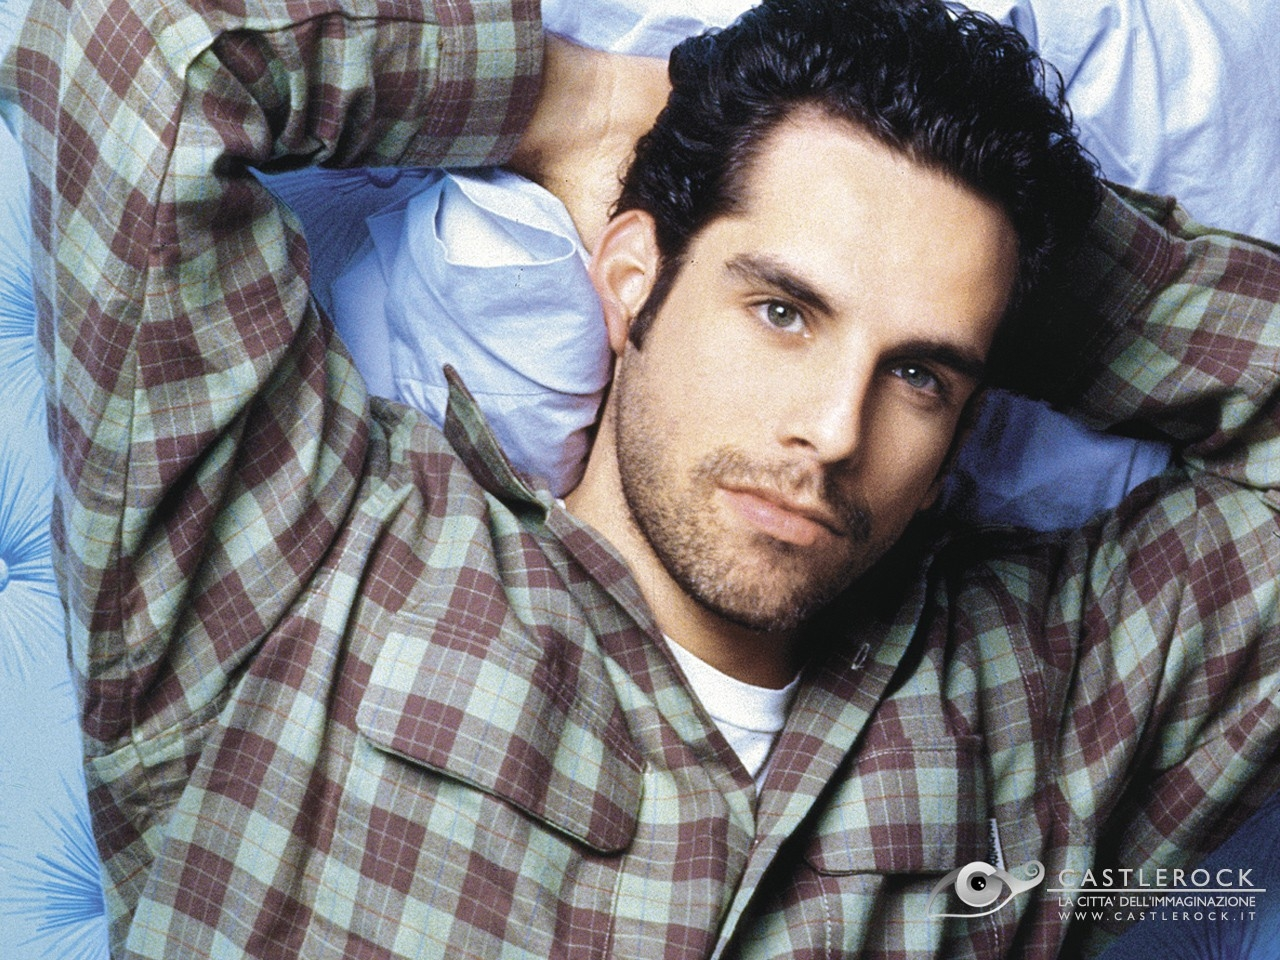 Wallpaper di Ben Stiller